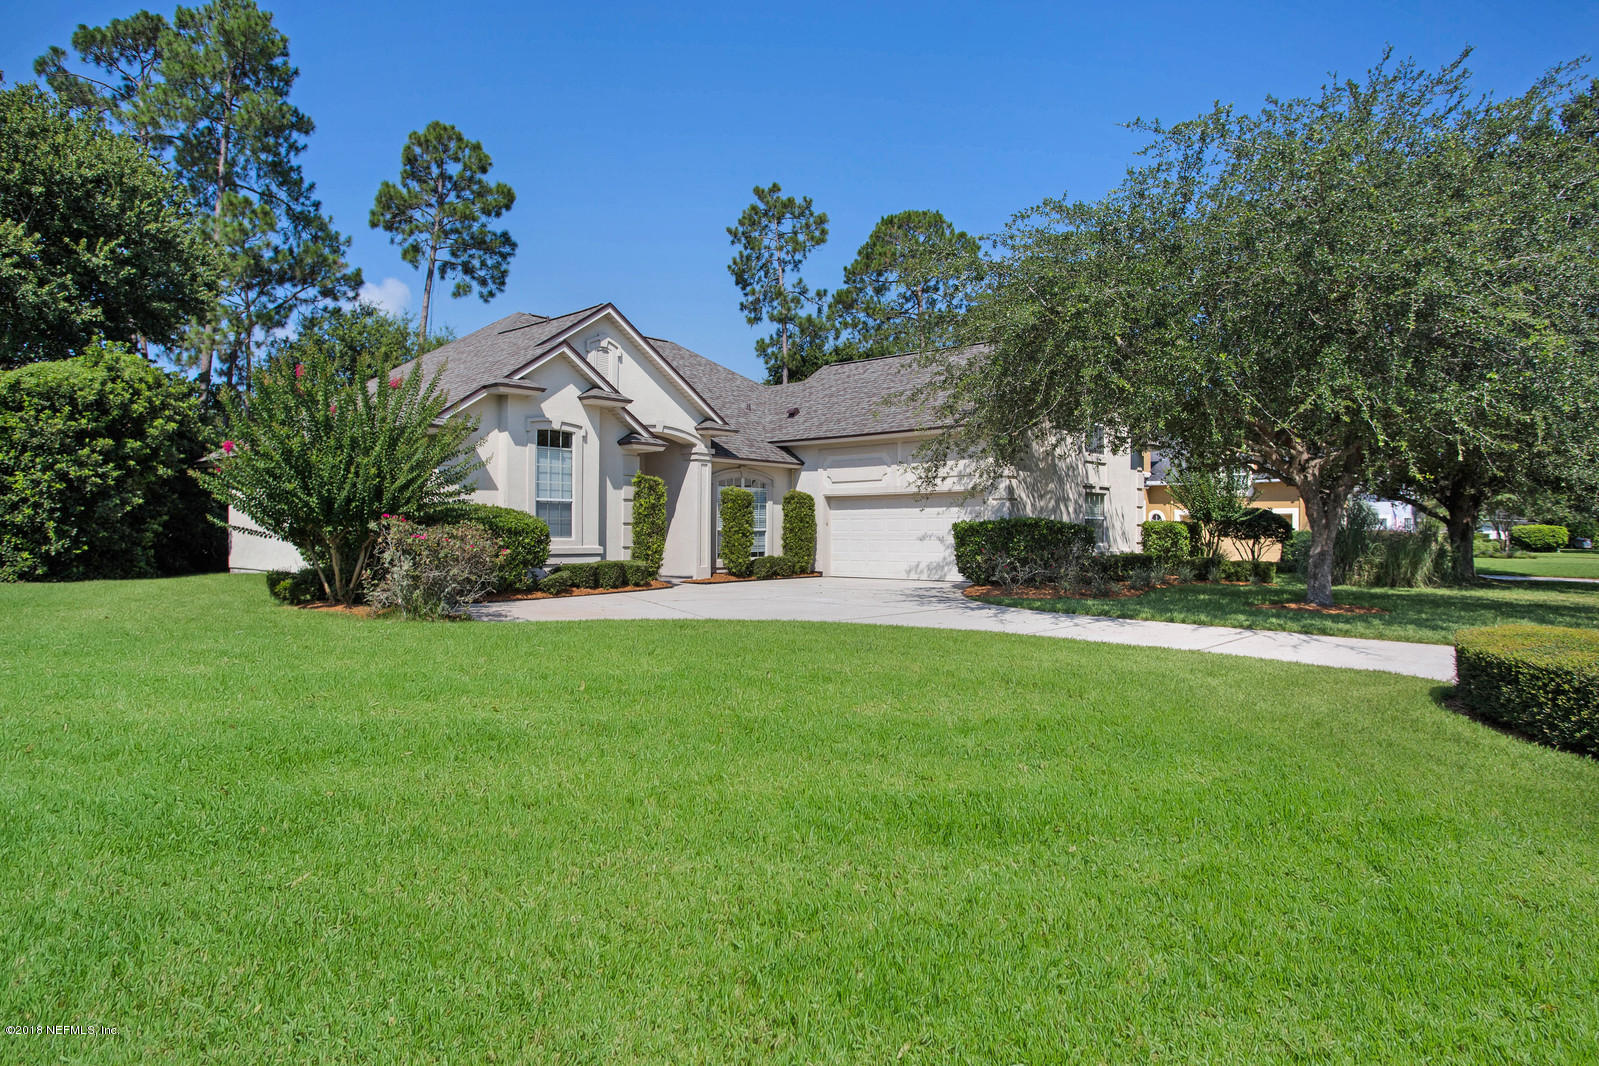 1664 COUNTRY WALK, FLEMING ISLAND, FLORIDA 32003, 5 Bedrooms Bedrooms, ,3 BathroomsBathrooms,Residential - single family,For sale,COUNTRY WALK,947309